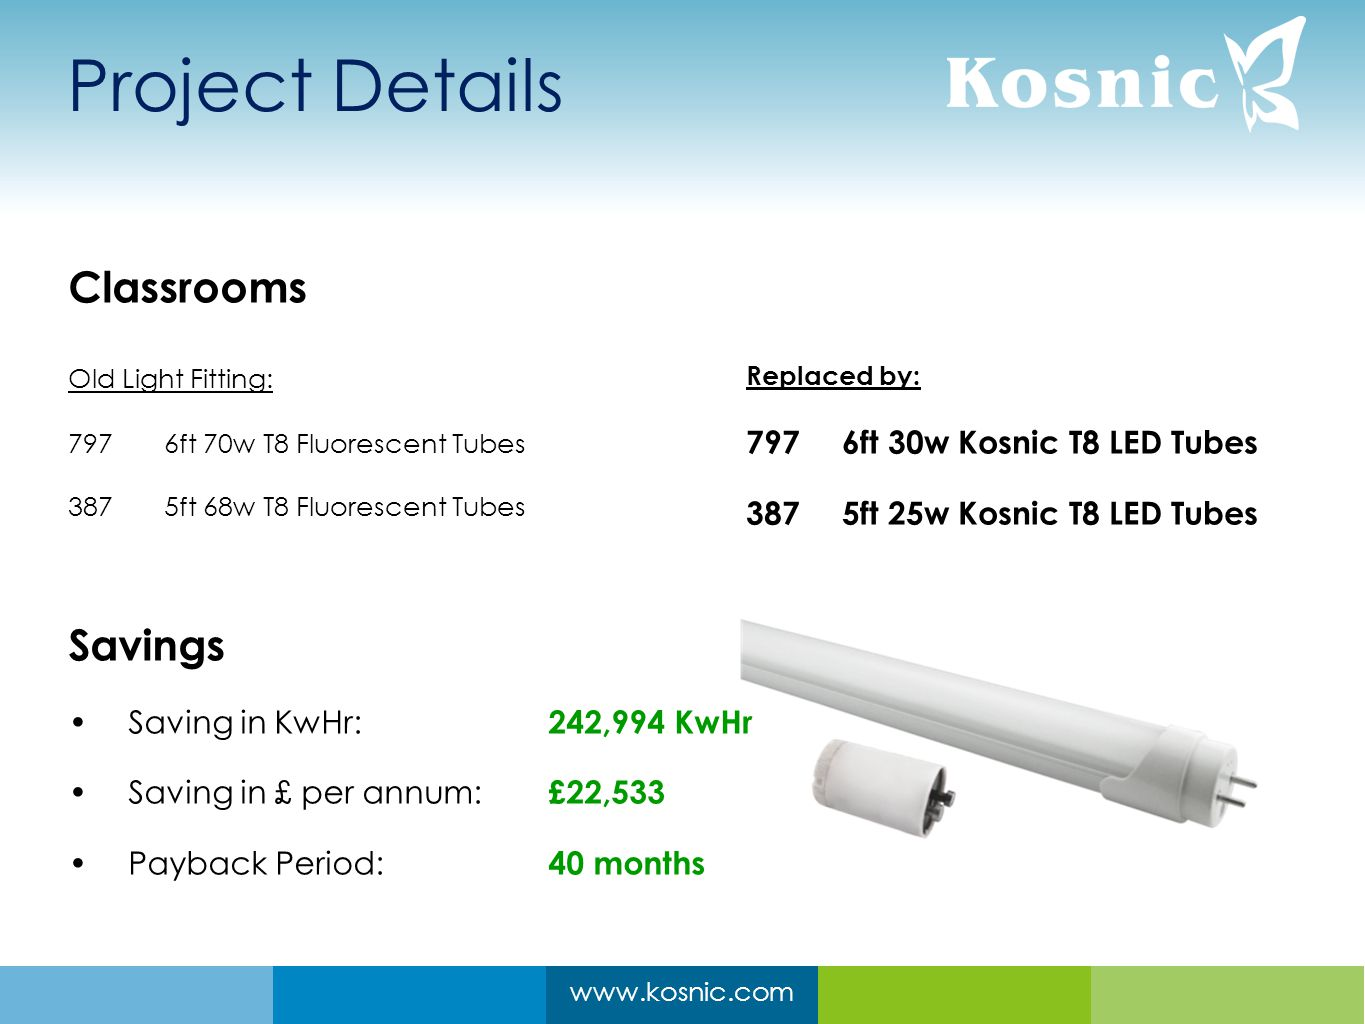 www.kosnic.com Project Details Classrooms Old Light Fitting: 7976ft 70w T8 Fluorescent Tubes 3875ft 68w T8 Fluorescent Tubes Savings Saving in KwHr: 242,994 KwHr Saving in £ per annum: £22,533 Payback Period: 40 months Replaced by: 7976ft 30w Kosnic T8 LED Tubes 3875ft 25w Kosnic T8 LED Tubes